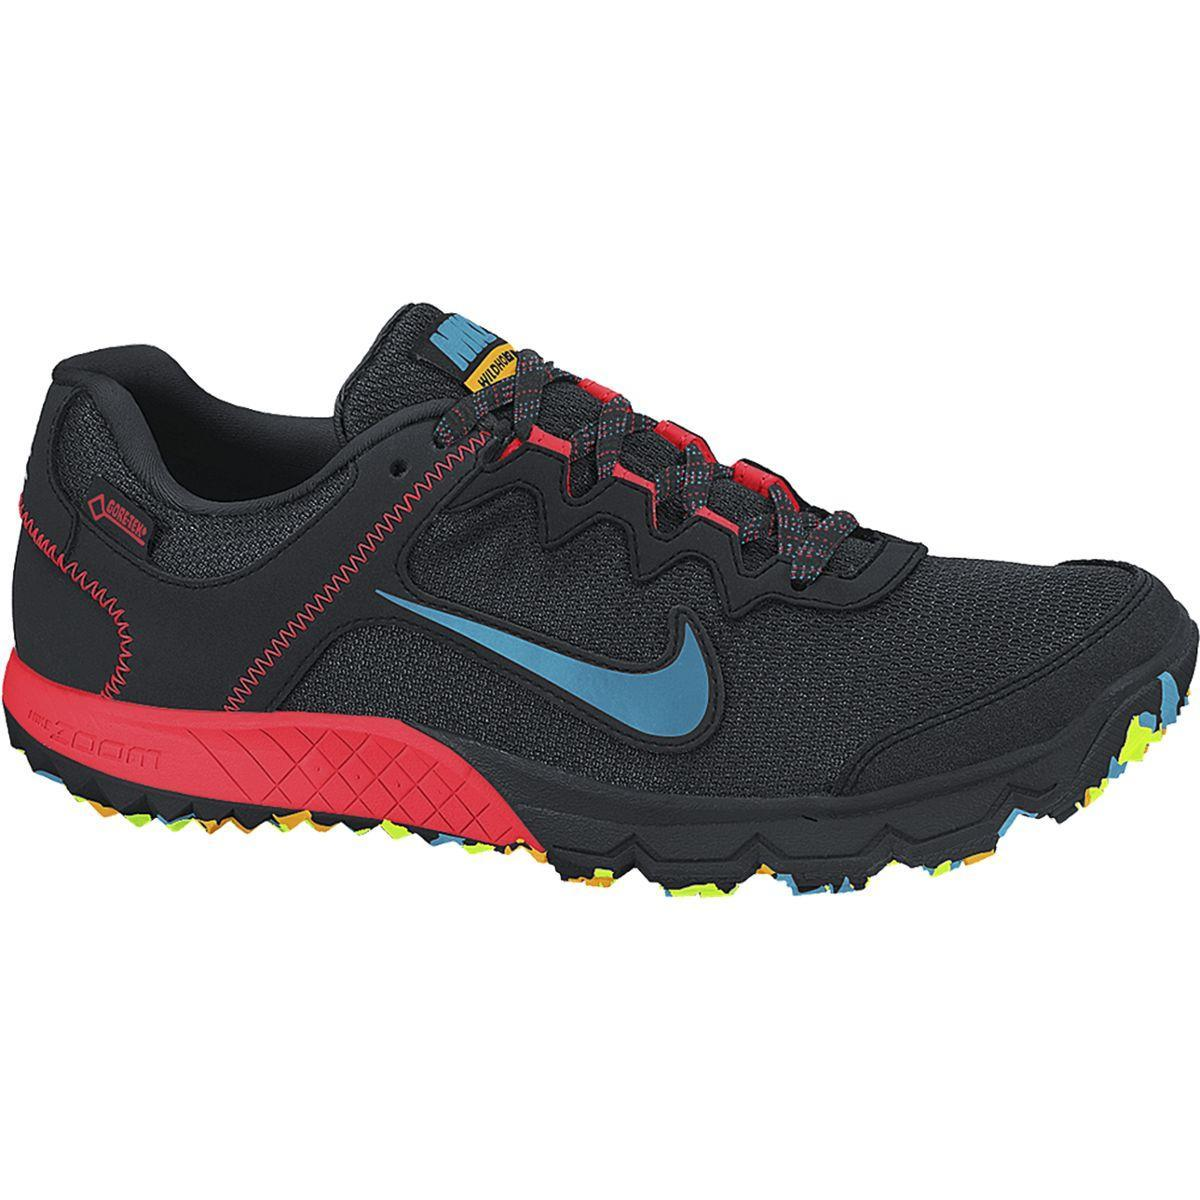 144f3dbd5a4 Nike Mens Zoom Wildhorse GTX Trail Running Shoes - Black Bright Crimson -  Tennisnuts.com